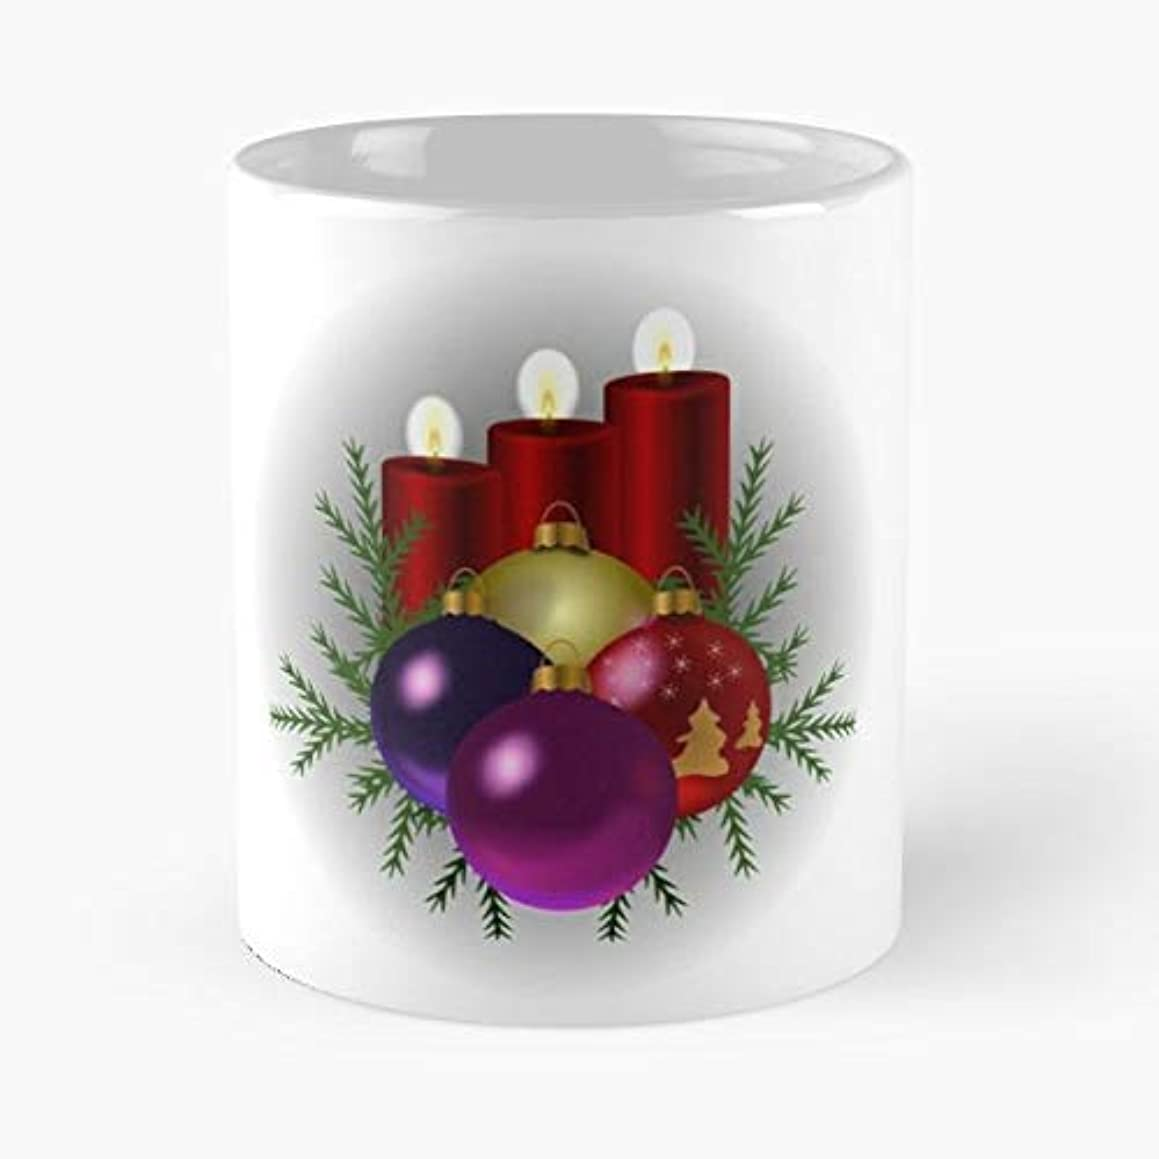 Candles Christmas Tree Decorations Pine -funny Present For My Greatest Boss Male Or Female, Men, Women, Great Office Gift Mugs, Birthday, Leaving, Bold, Cup, 11 Oz